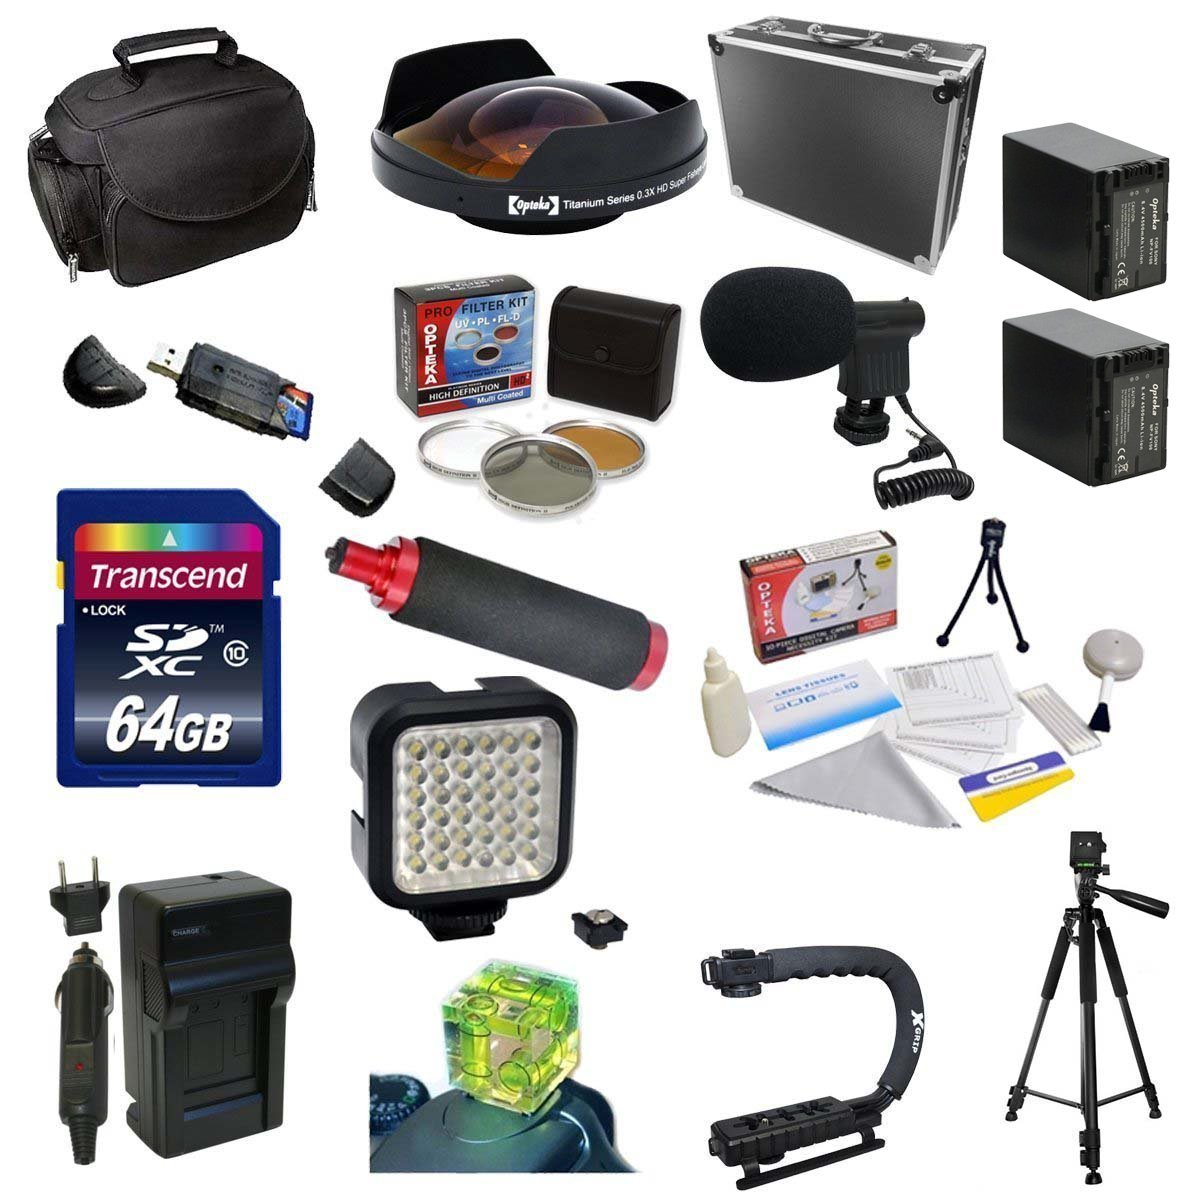 Special Edition Kit For Sony HDR-PJ650V, 64GB Memory Card, 5 Piece Filter Kit, 0.3X Ultra Fisheye Lens, 2 NP-FV100 Battery Packs, Charger, X-GRIP, HG-1 Handgrip, LED Light, Mini-Shotgun Mic and More